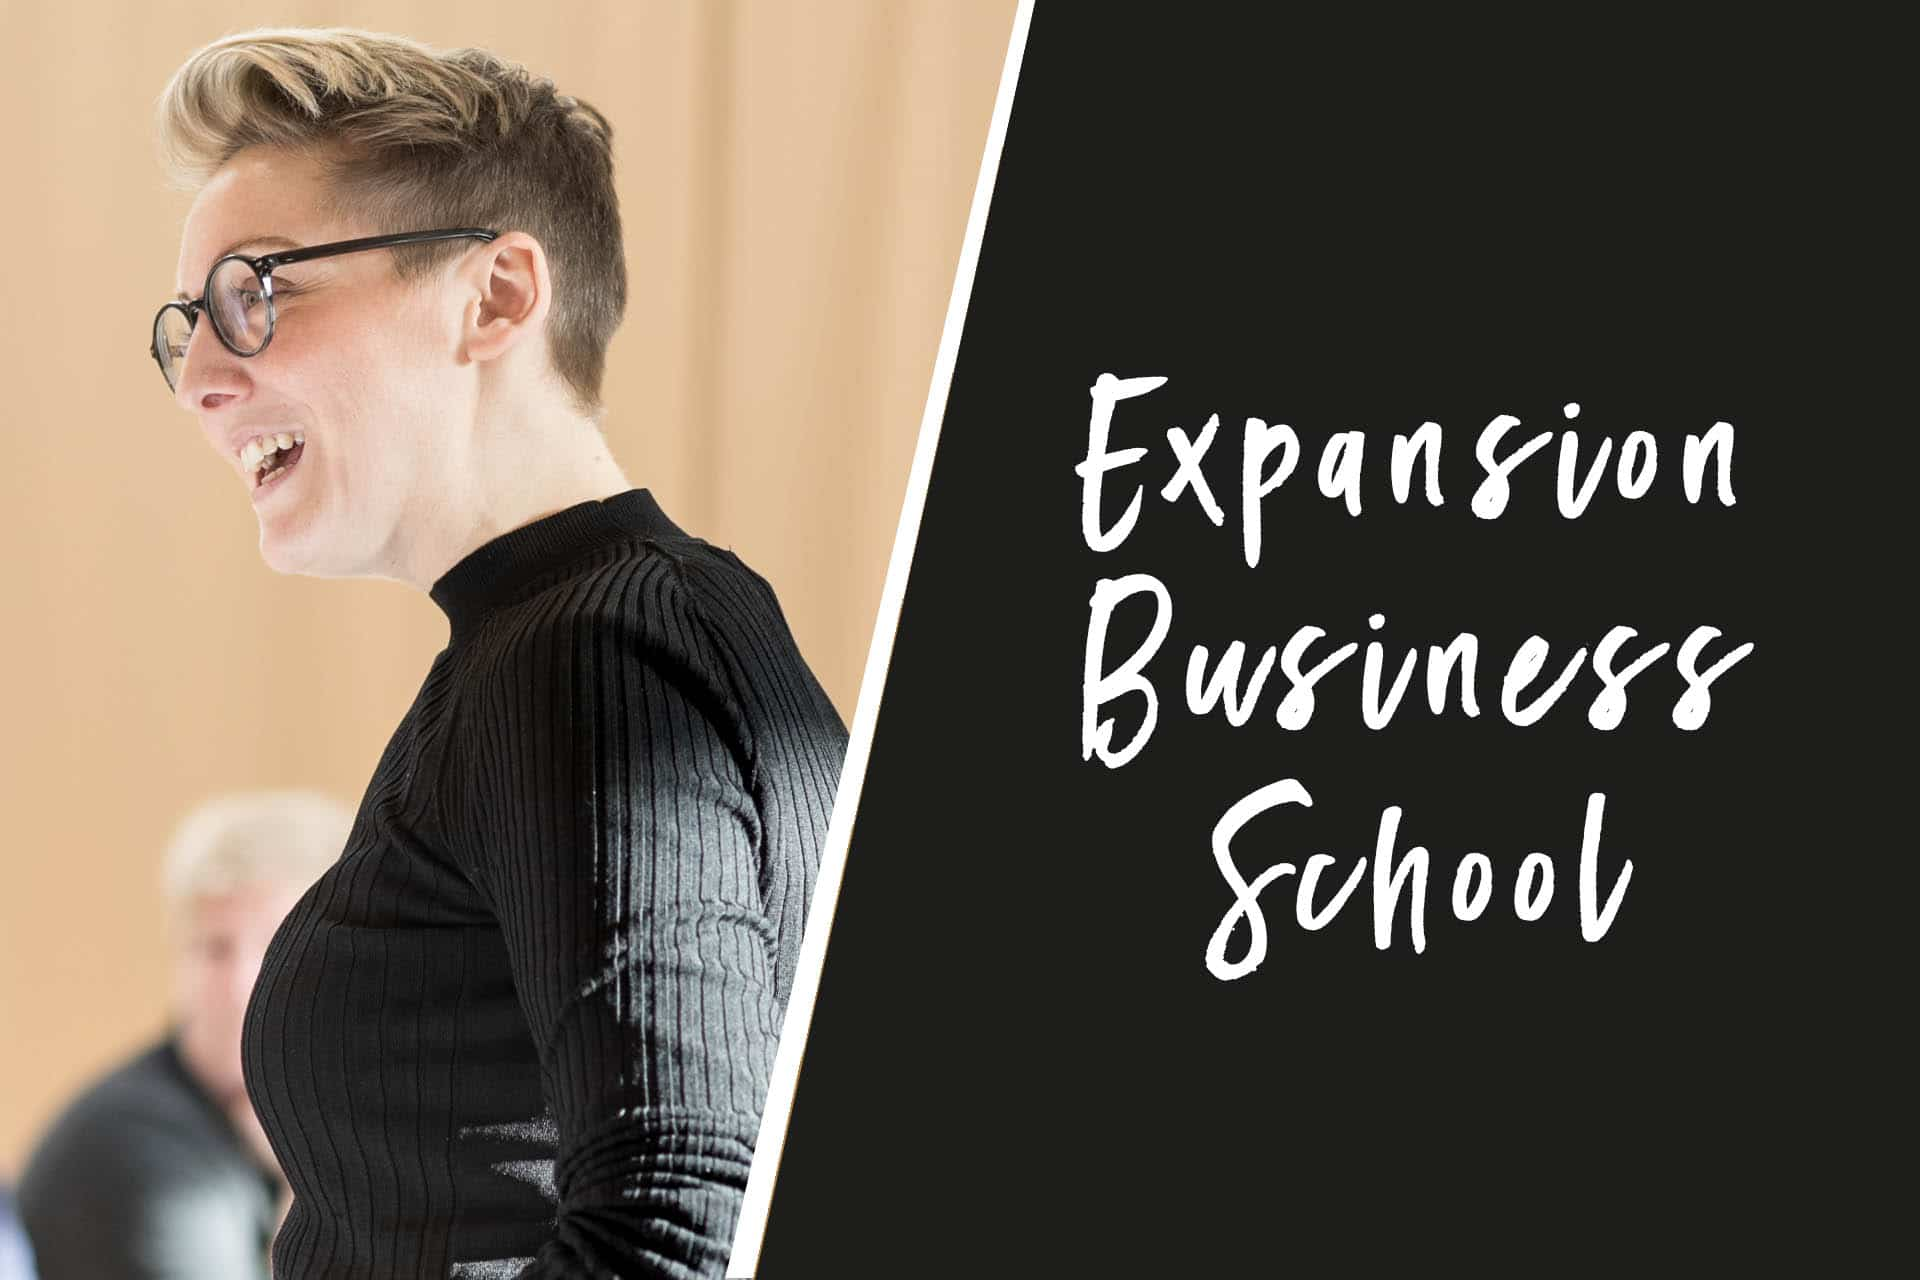 Expansion business school